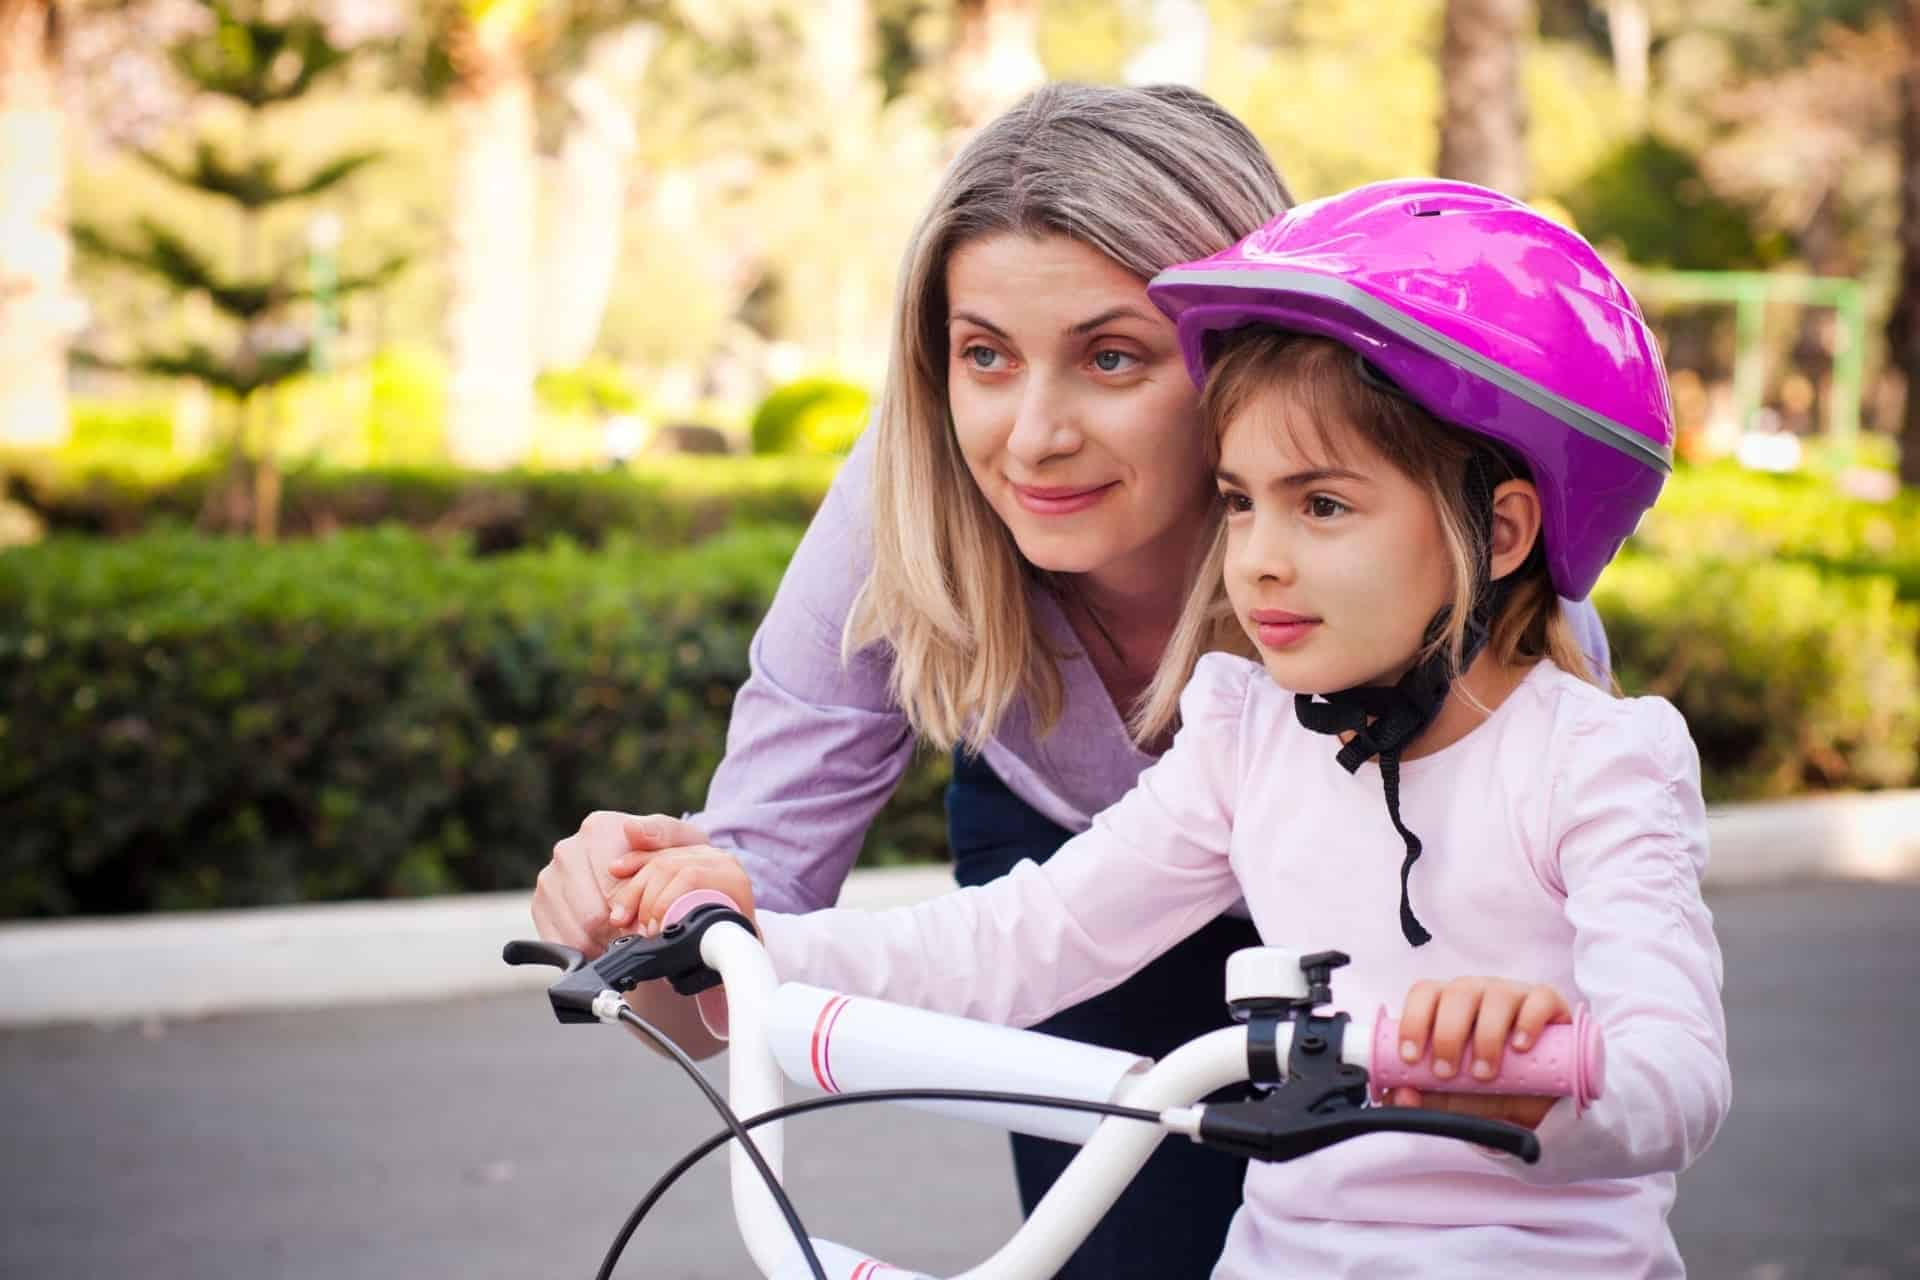 the best bikes for 4 year old girls are lightweight but sturdy and have step-through frames.